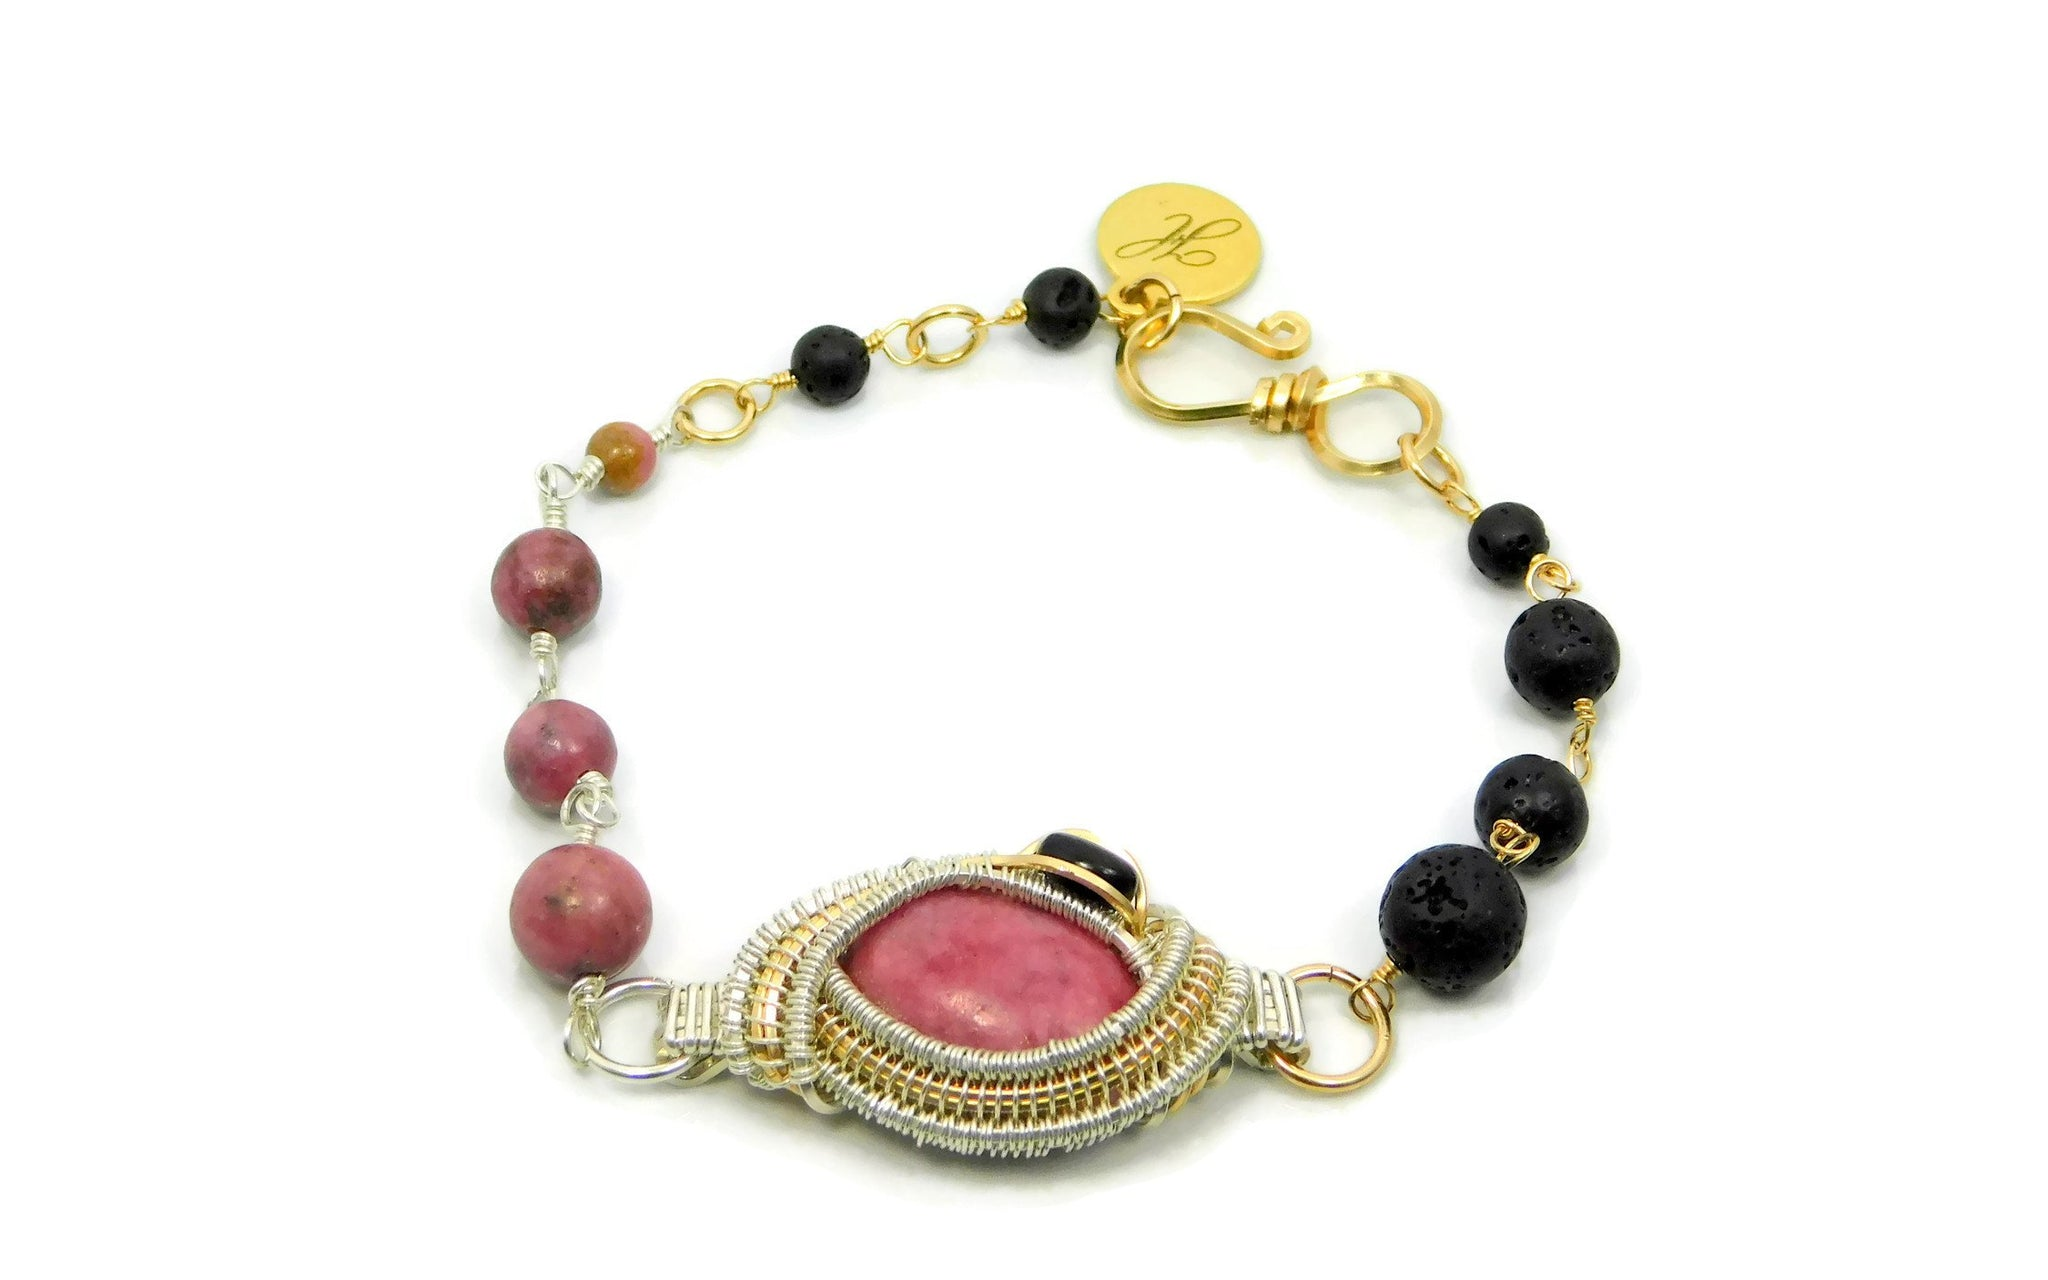 Rhodonite, Black Onyx and Lava Stone Bracelet in sterling silver and 14kt gold fill wrap bracelet wire wrap bracelet cold fusion jewelry gold and silver jewelry handmade silver jewelry sterling silver jewelry artisan jewelry handmade gemstone jewelry one of a kind jewelry unique jewelry